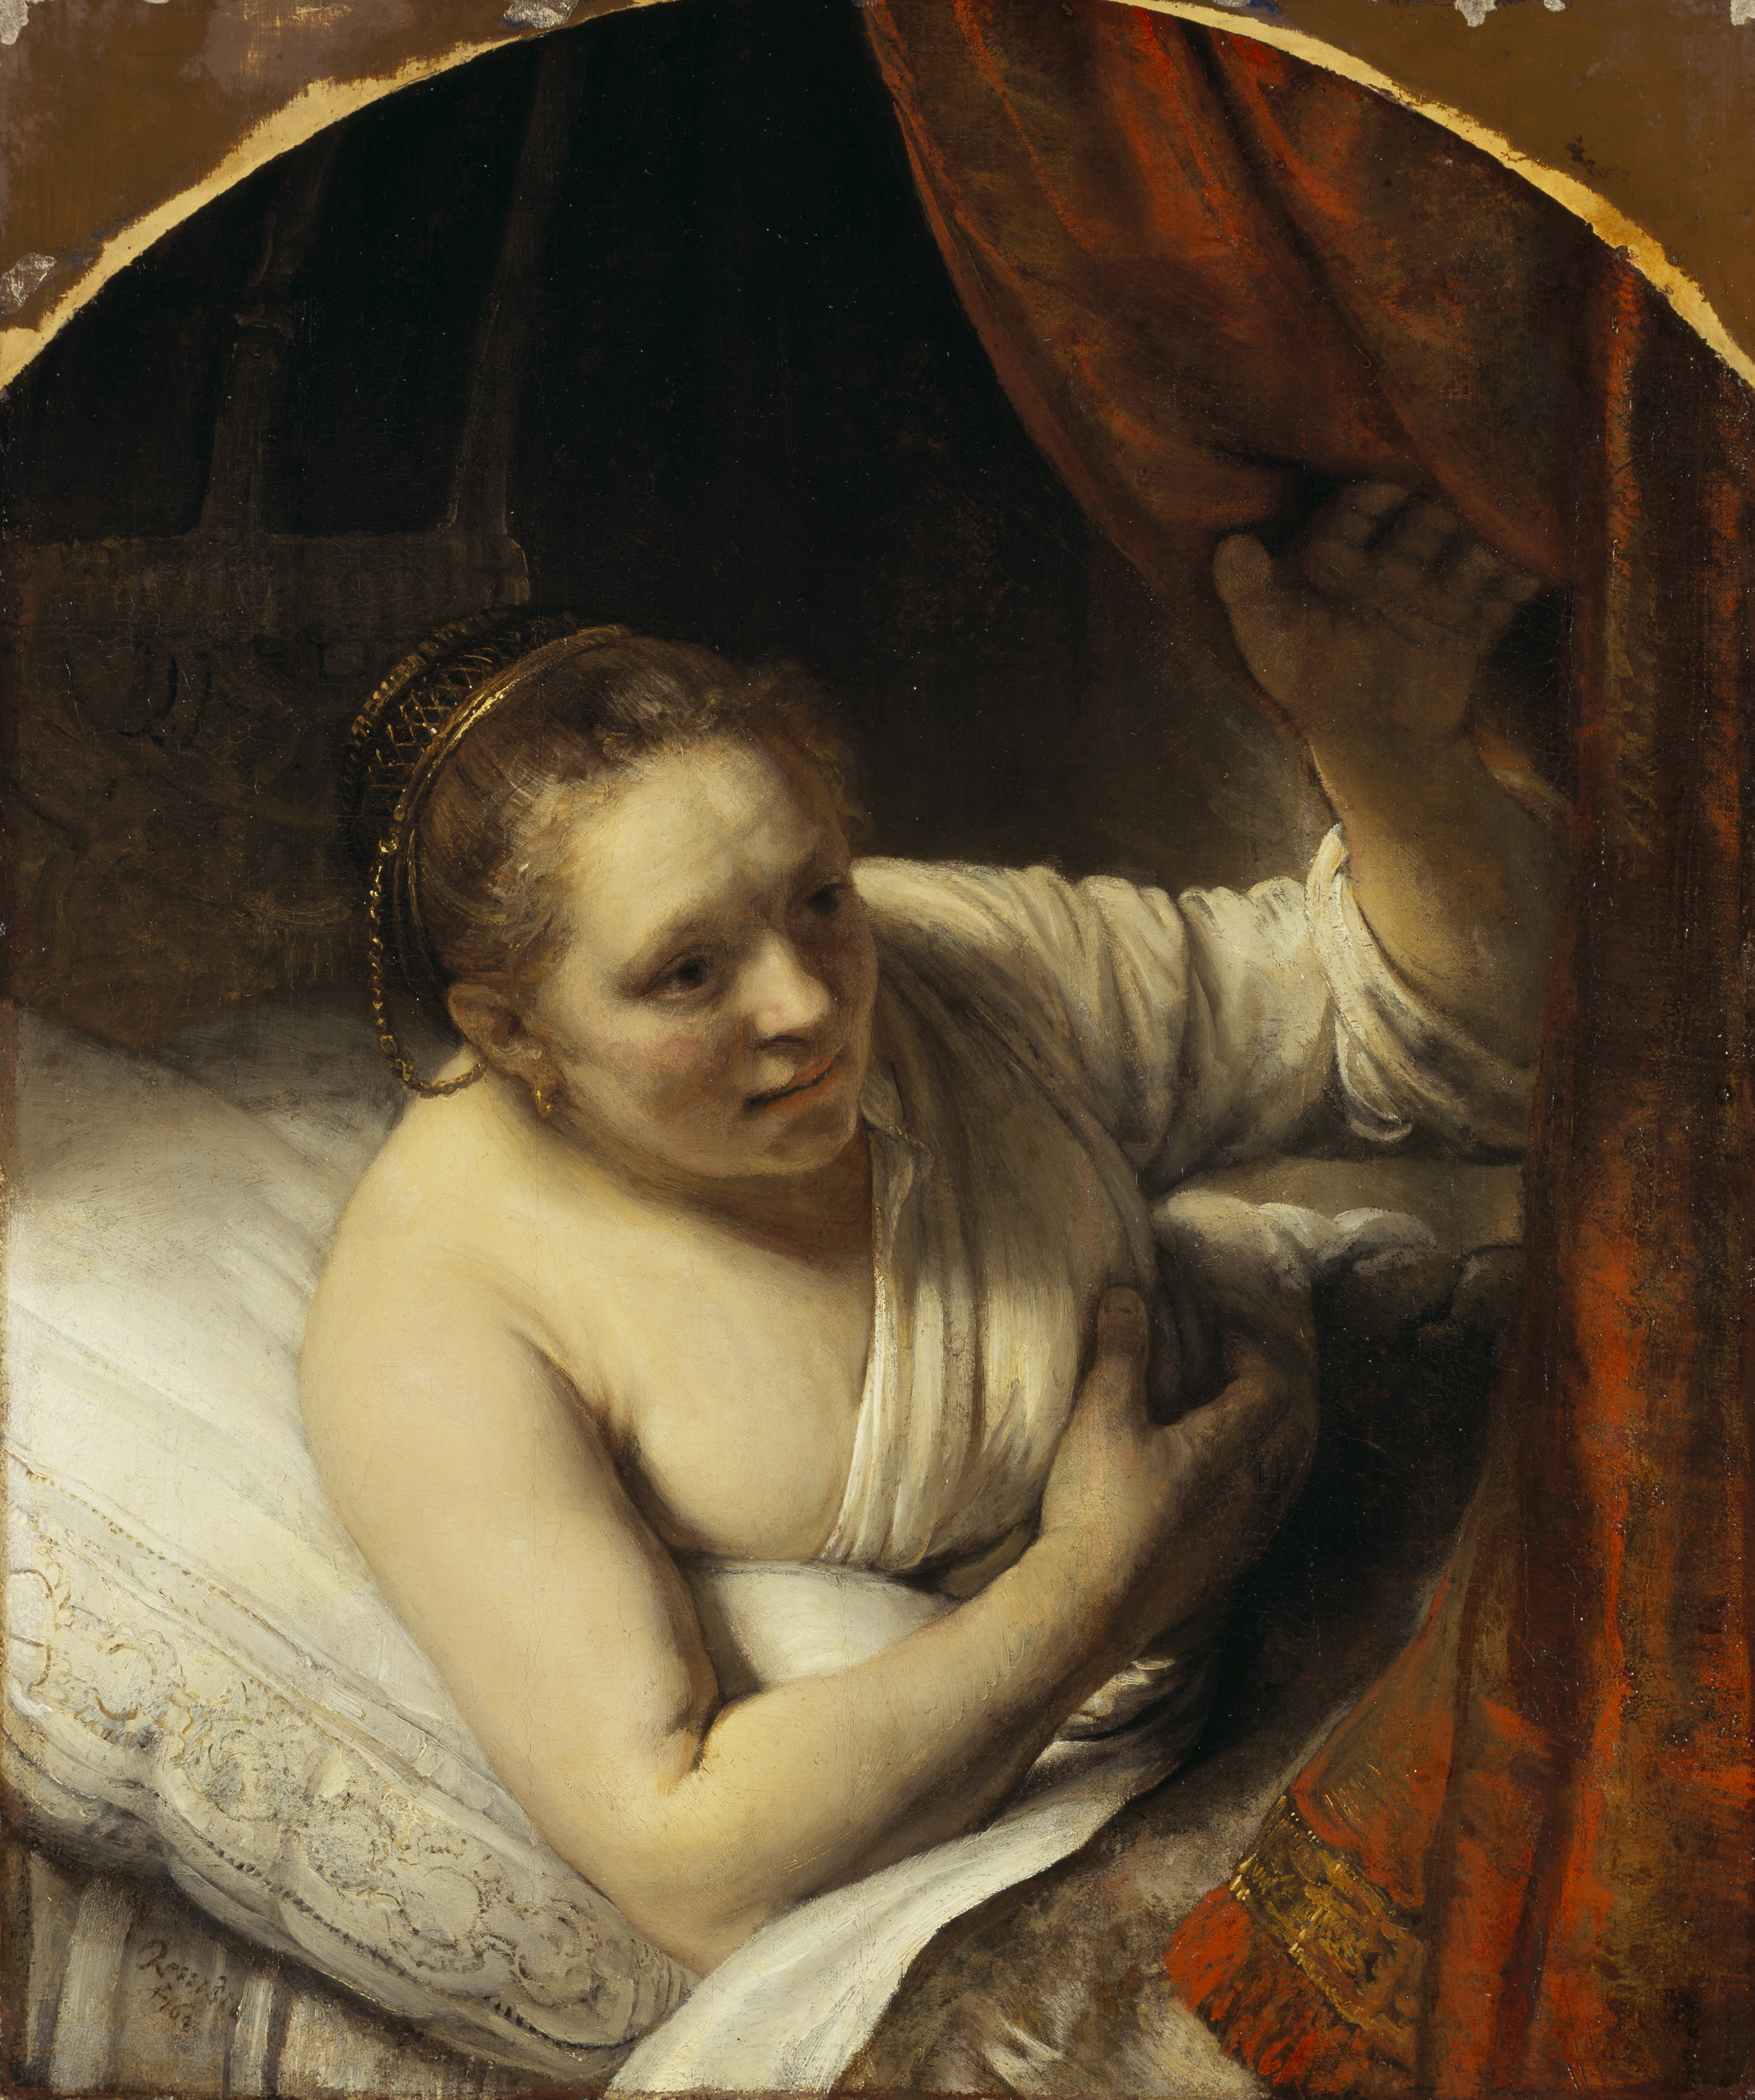 Rembrandt van Rijn A woman in bed 164(7?) oil on canvas 81.4 x 67.9 cm Scottish National Gallery, Edinburgh © Trustees of the National Galleries of Scotland ***This image may only be used in conjunction with editorial coverage of The Greats exhibition, 24 Oct 2015 - 14 Feb 2016, at the Art Gallery of New South Wales. This image may not be cropped or overwritten. Prior approval in writing required for use as a cover. Caption details must accompany reproduction of the image. *** Media contact: Lisa.Catt@ag.nsw.gov.au *** Local Caption *** ***This image may only be used in conjunction with editorial coverage of The Greats exhibition, 24 Oct 2015 - 14 Feb 2016, at the Art Gallery of New South Wales. This image may not be cropped or overwritten. Prior approval in writing required for use as a cover. Caption details must accompany reproduction of the image. *** Media contact: Lisa.Catt@ag.nsw.gov.au